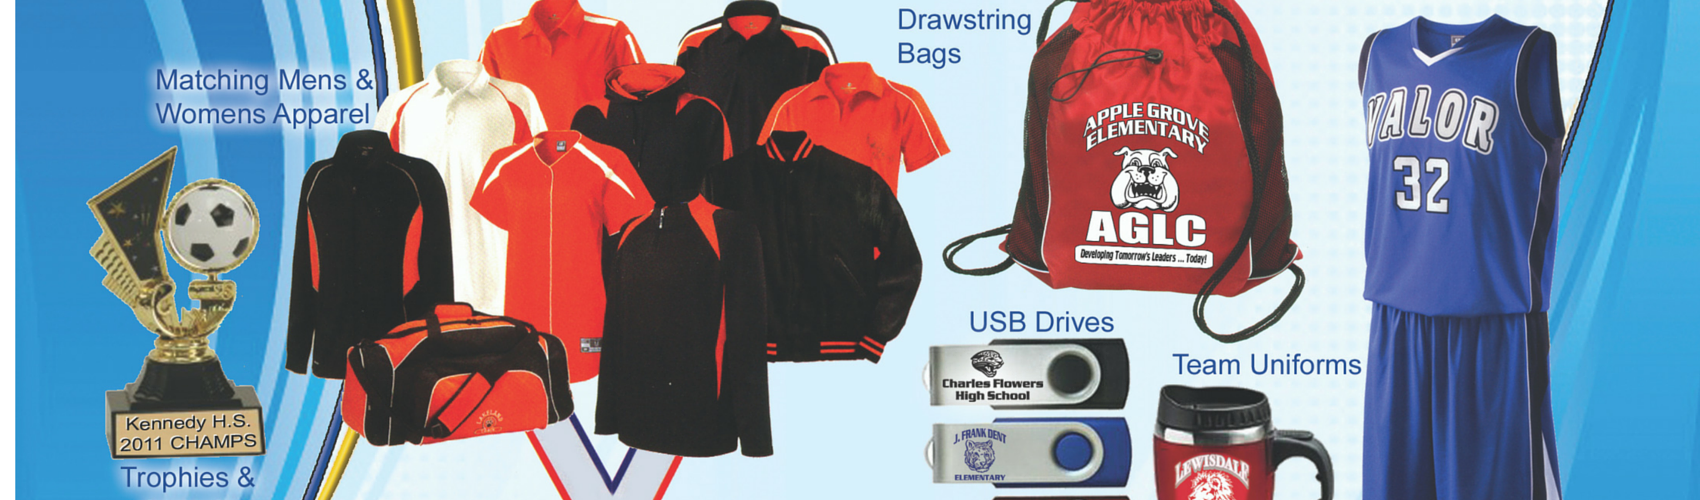 School Promotional items custom imprinted